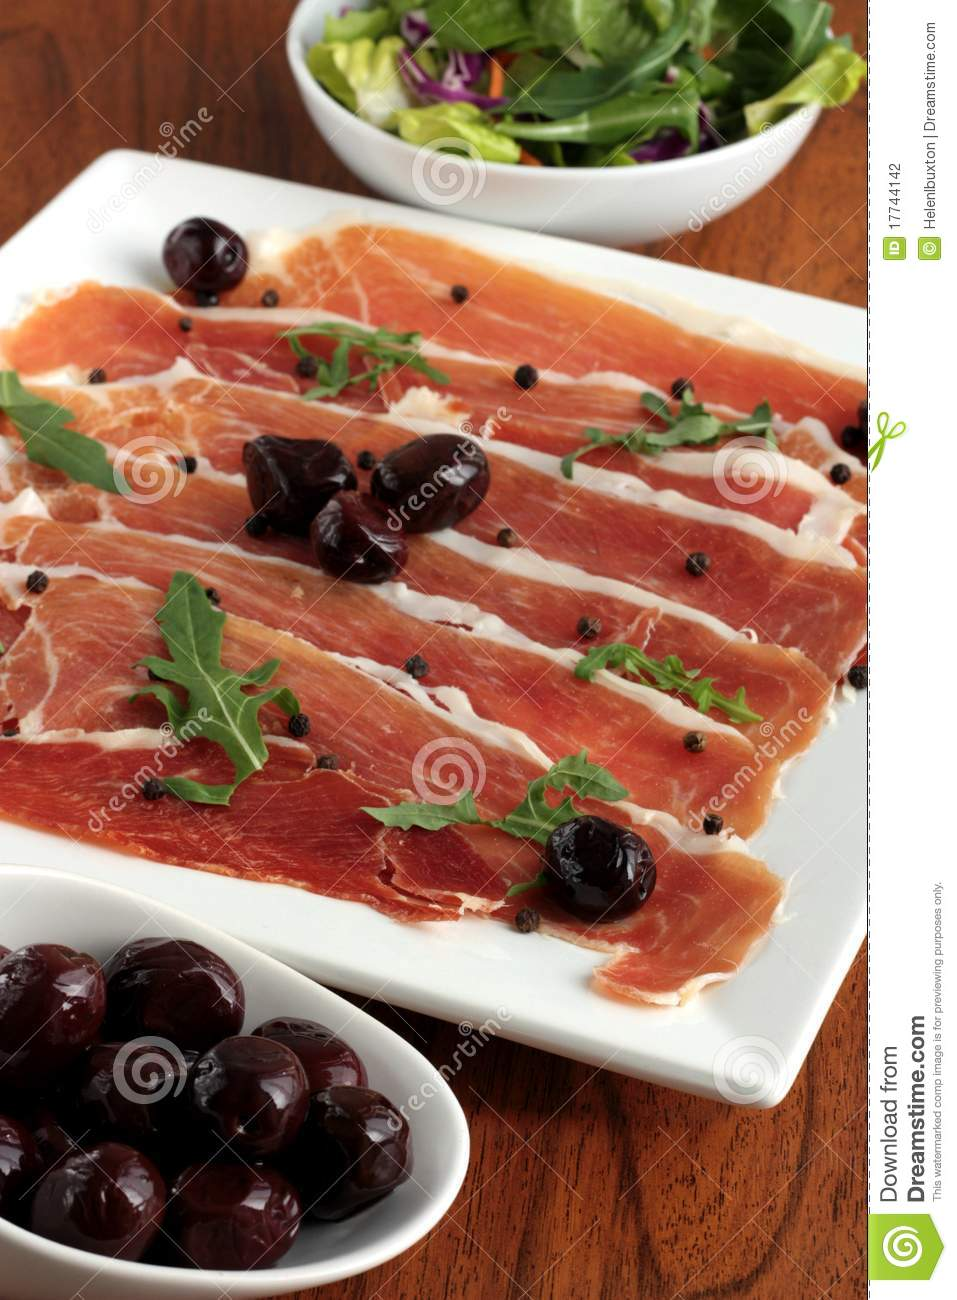 Serrano Ham and Olives Appetizer